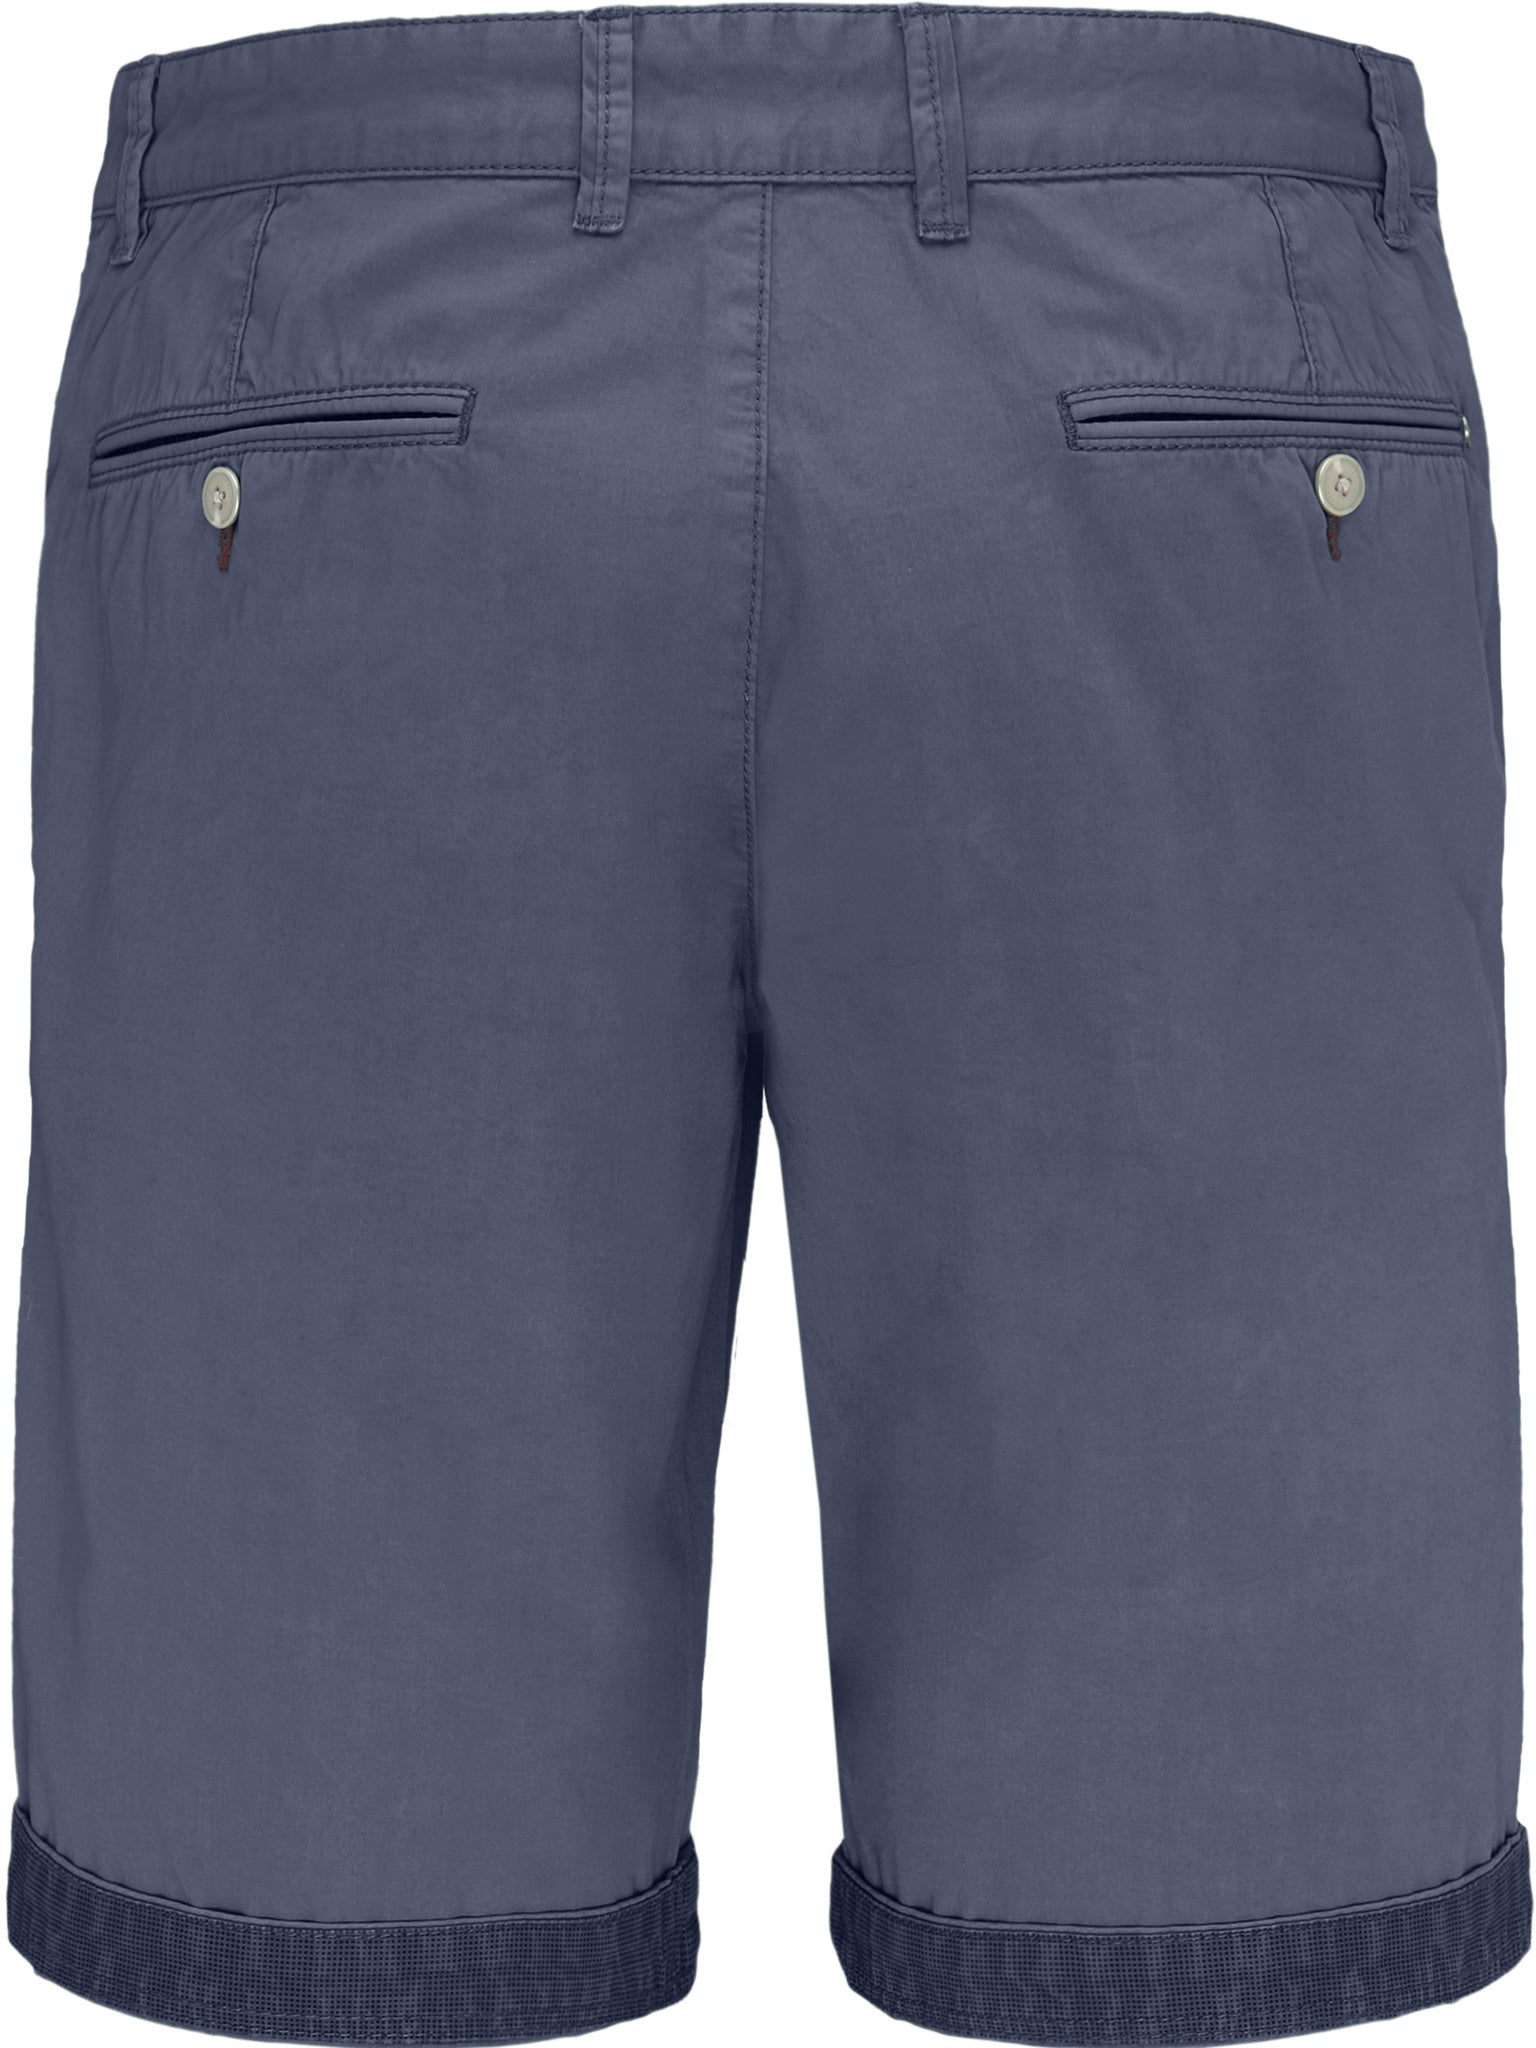 Fynch Hatton Garment Dyed Shorts for Men in Pacific